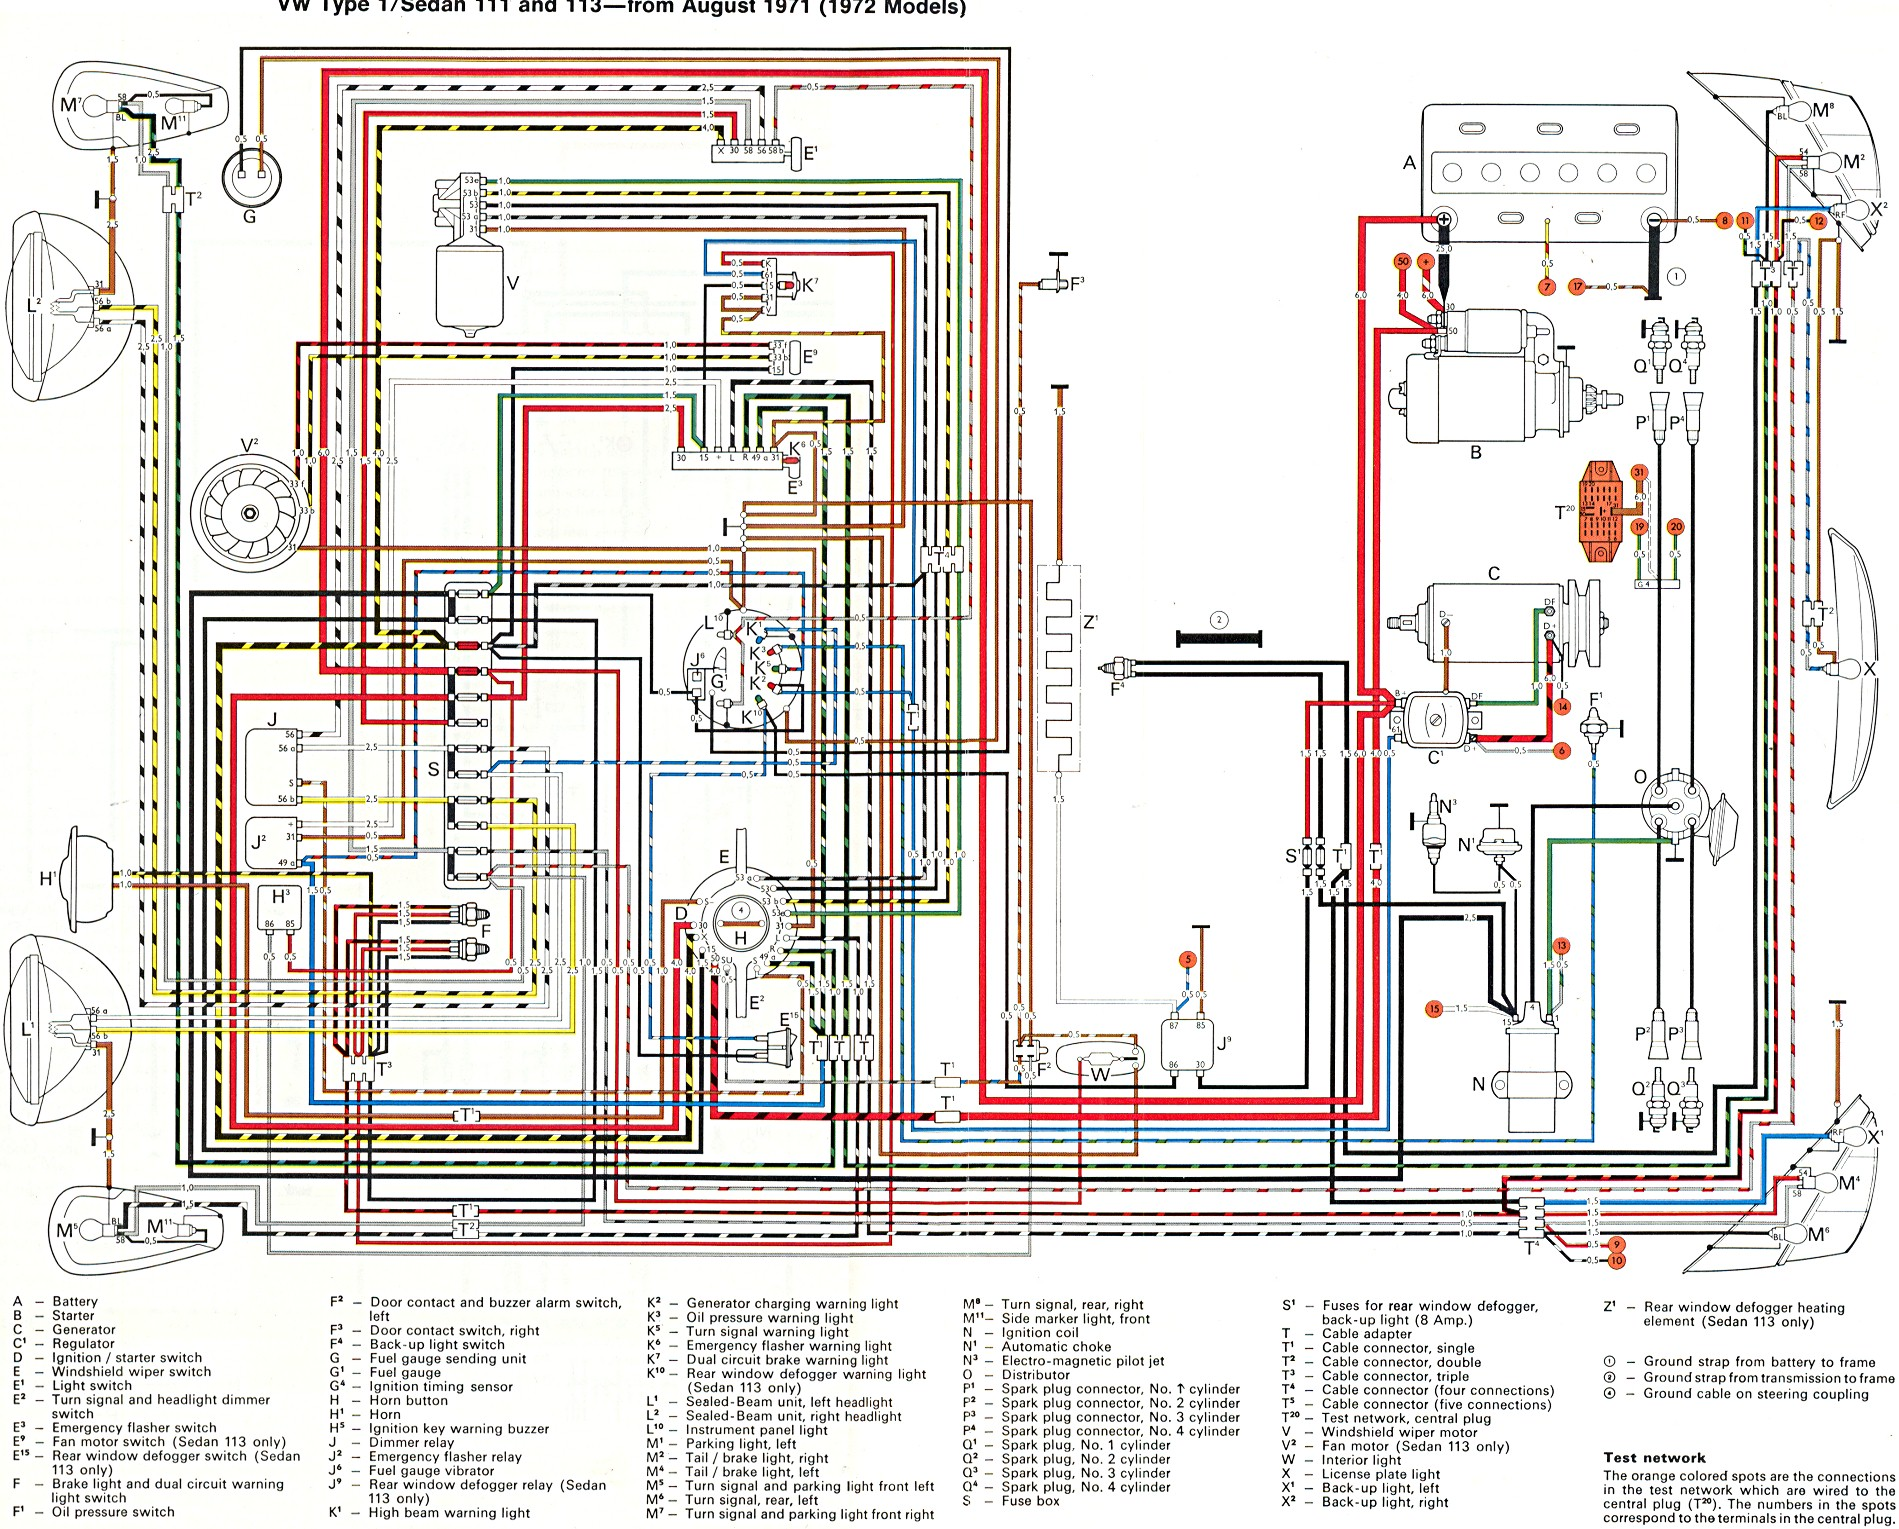 Schemas Electriques Rear Defrost Wiring Diagram 1972 Standard And Super